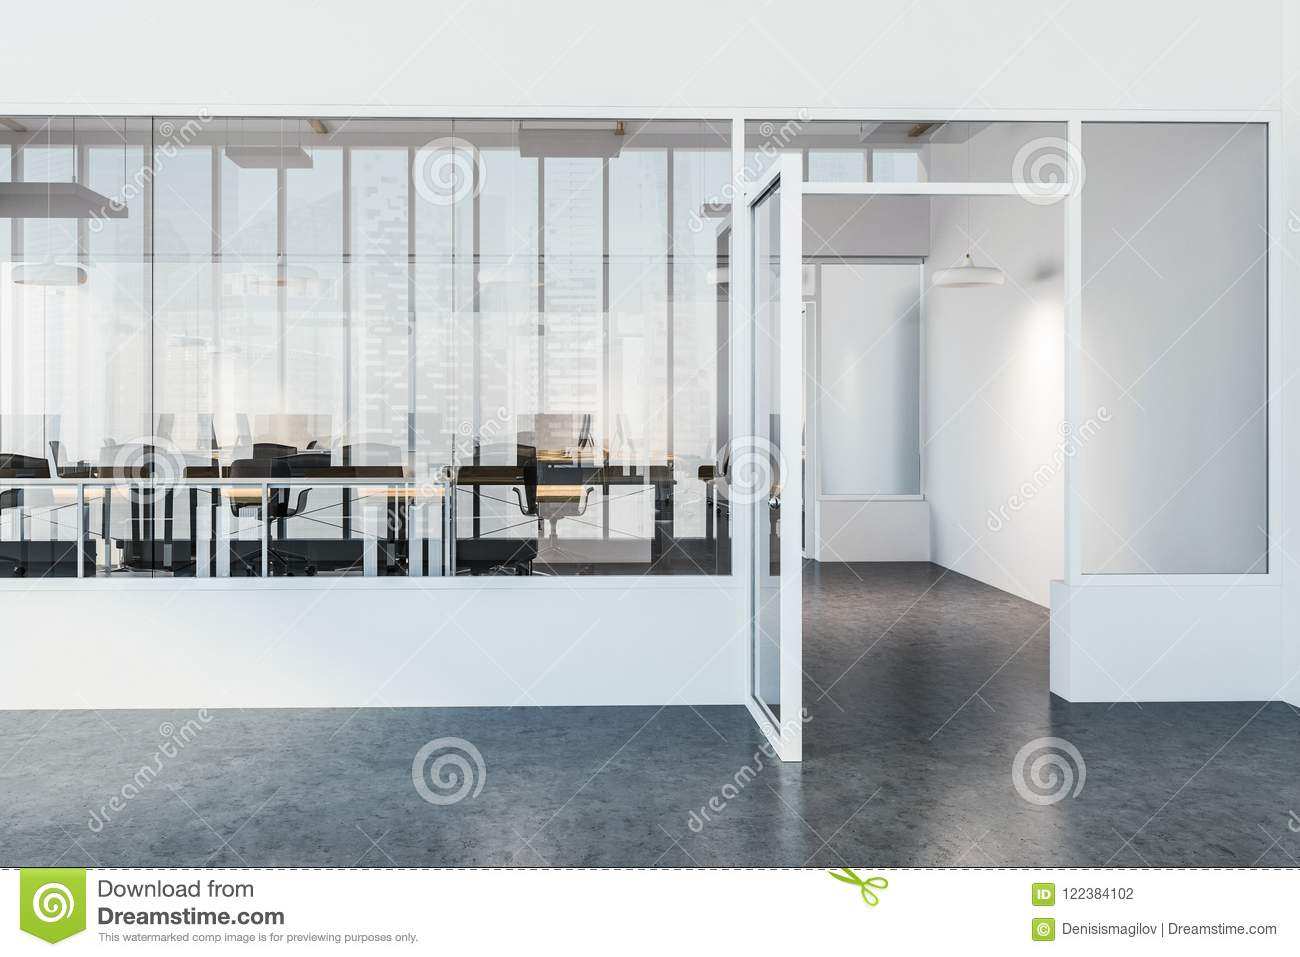 Lobby of a modern law company office with a concrete floor and computer desks standing in a row an open glass door 3d rendering mock up